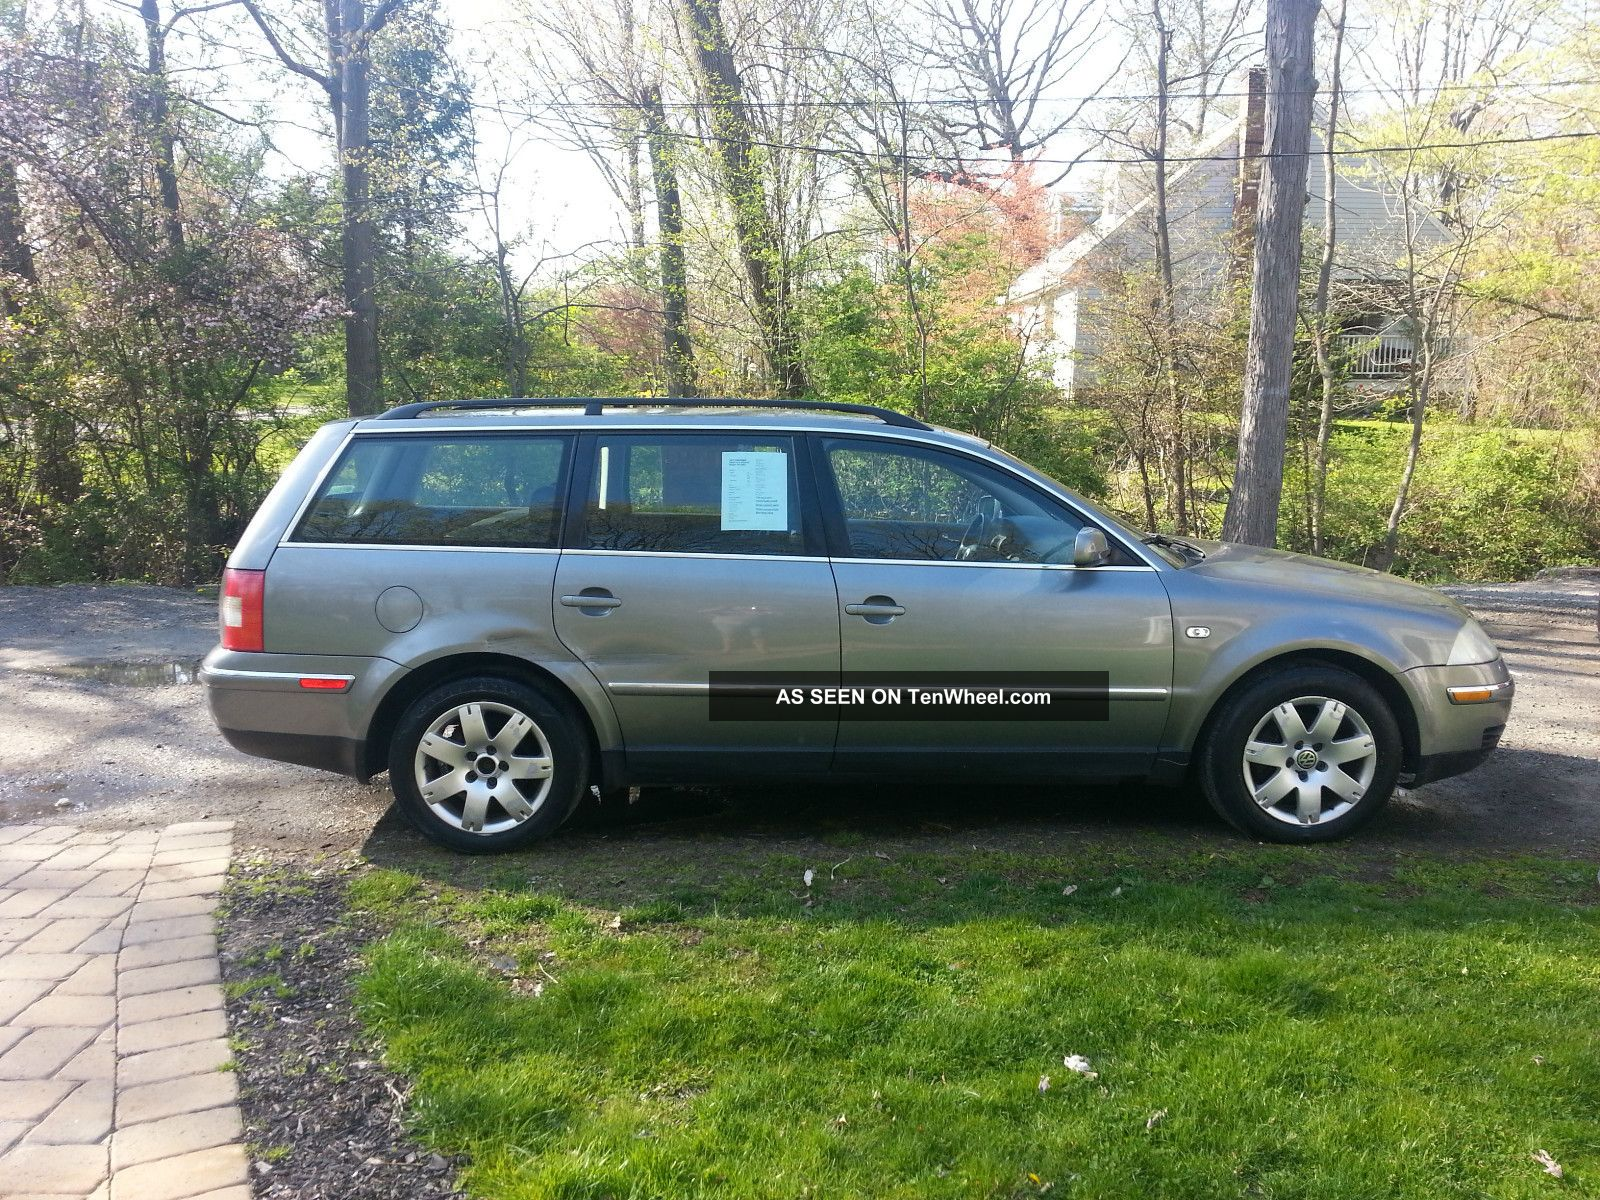 2002 volkswagen passat glx 4 motion wagon 4 door 2 8l. Black Bedroom Furniture Sets. Home Design Ideas